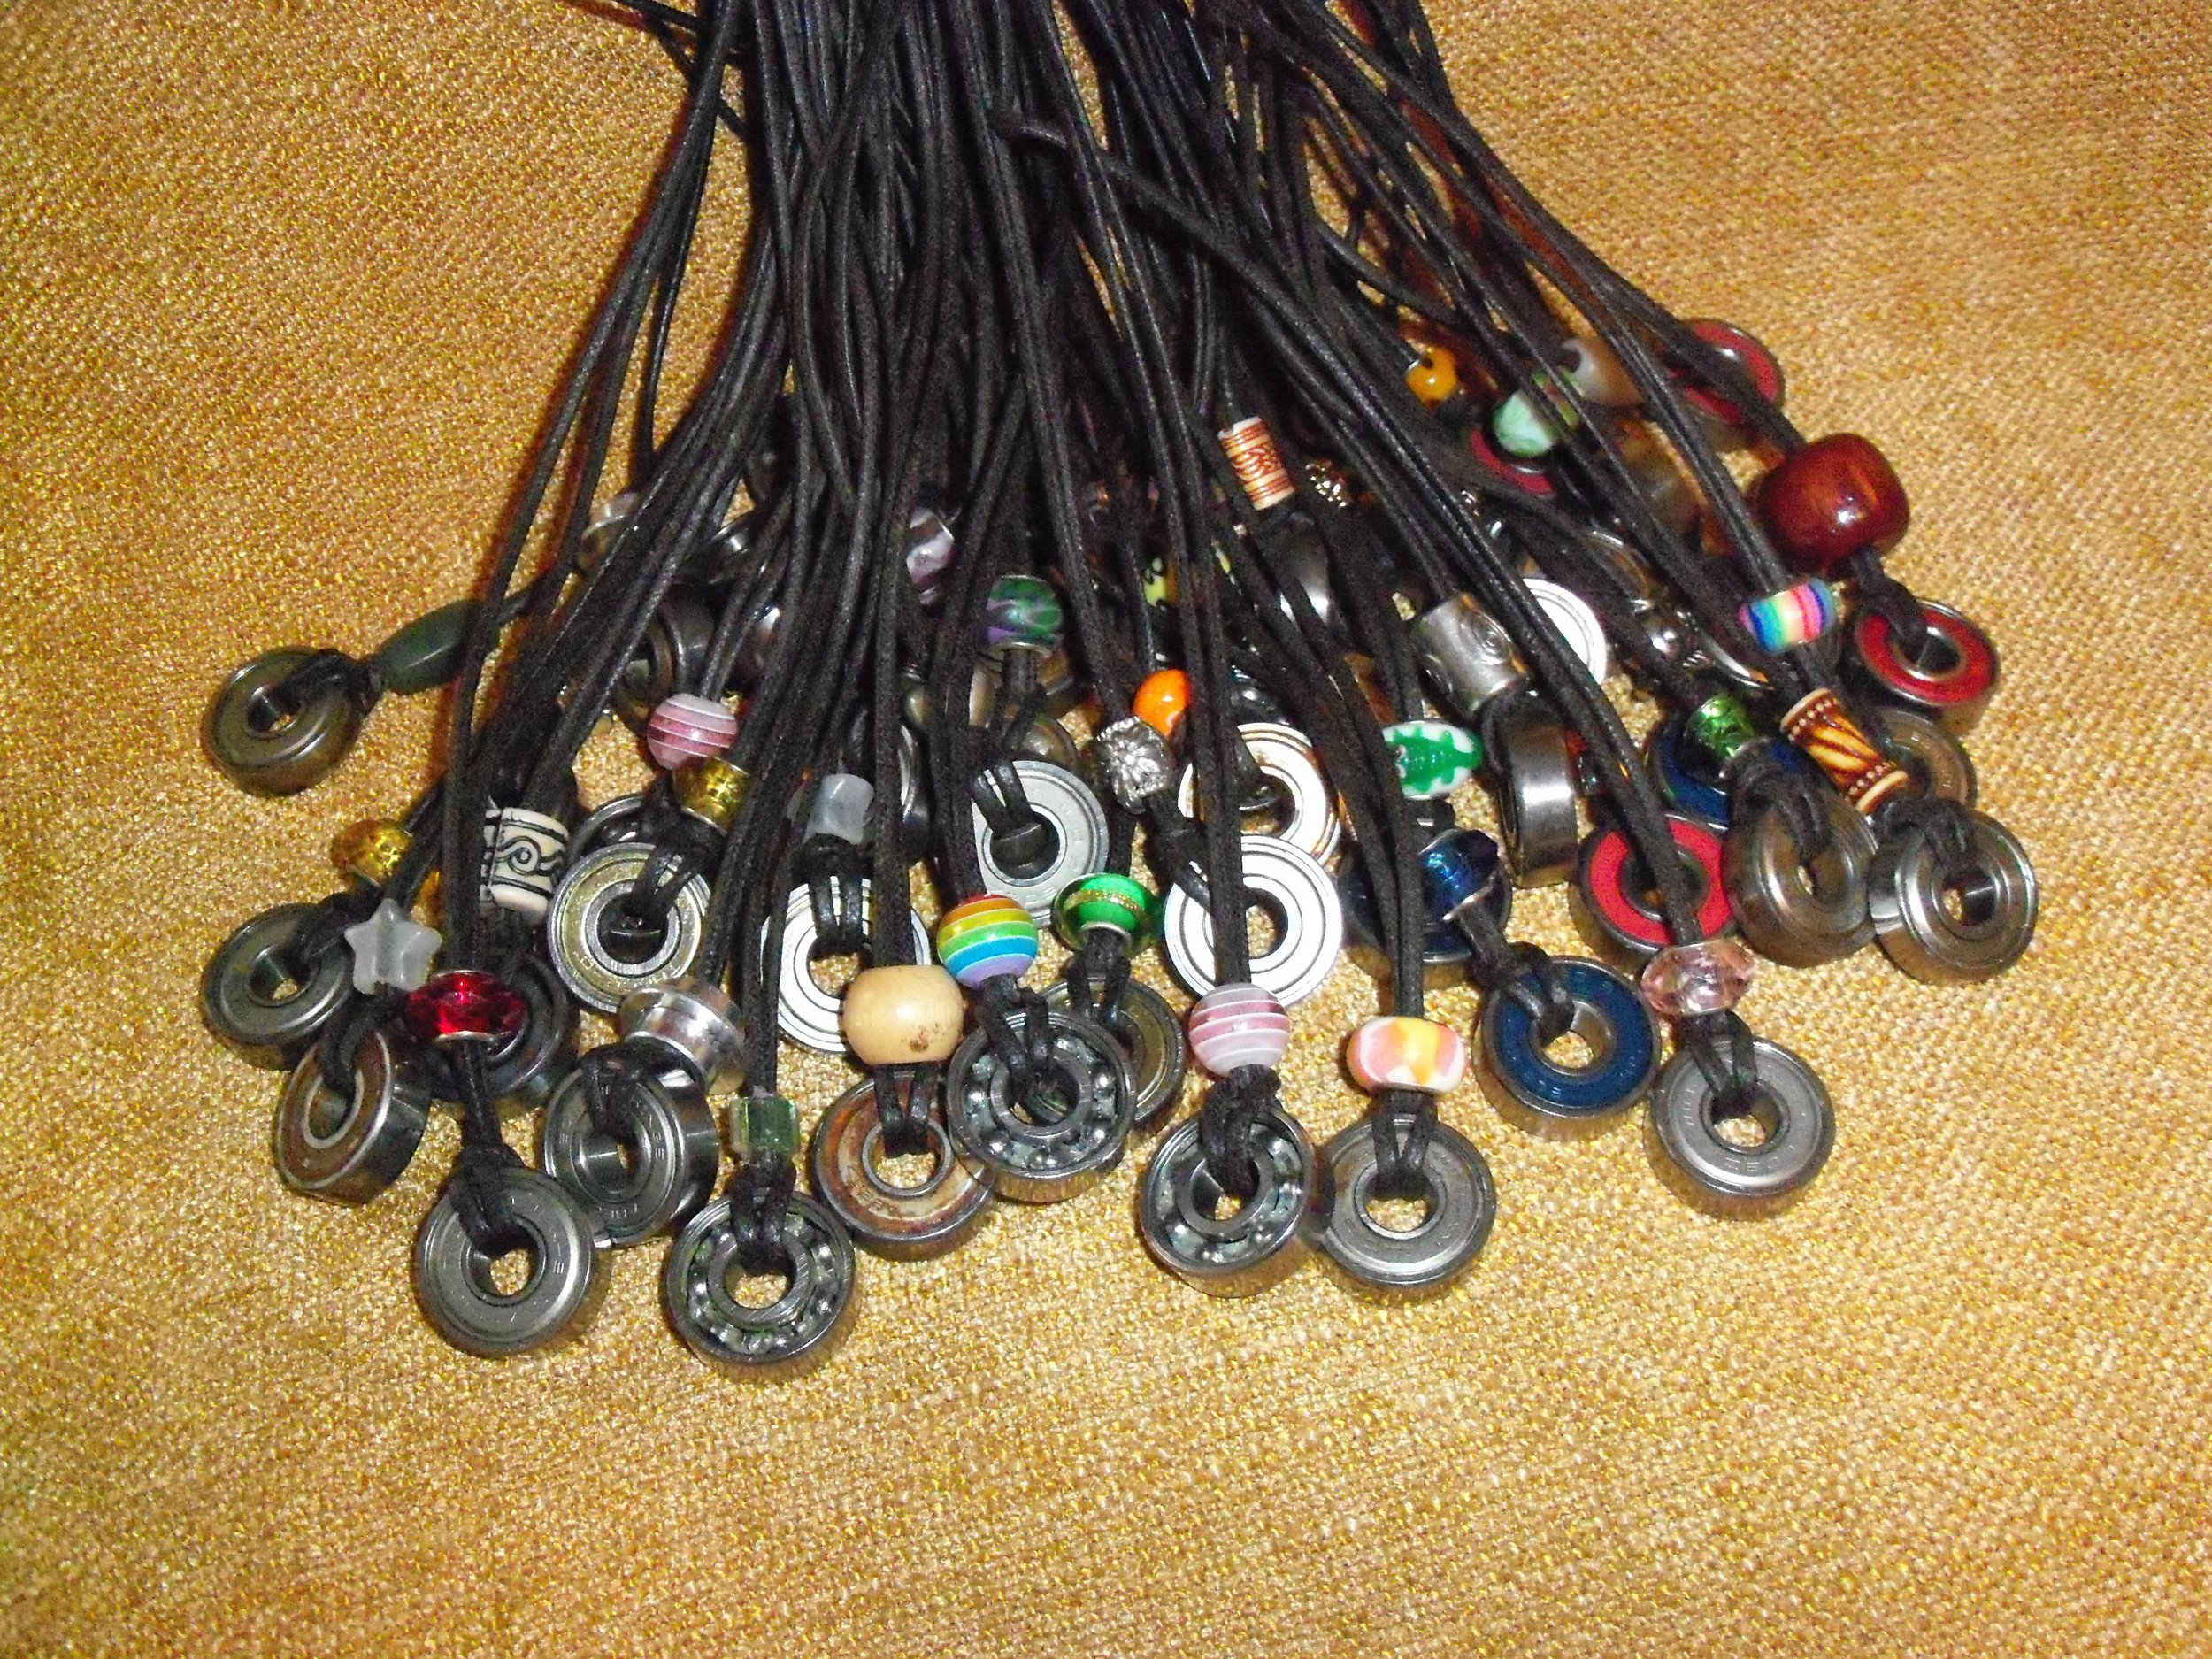 f310915726bd-bearing_necklaces.JPG